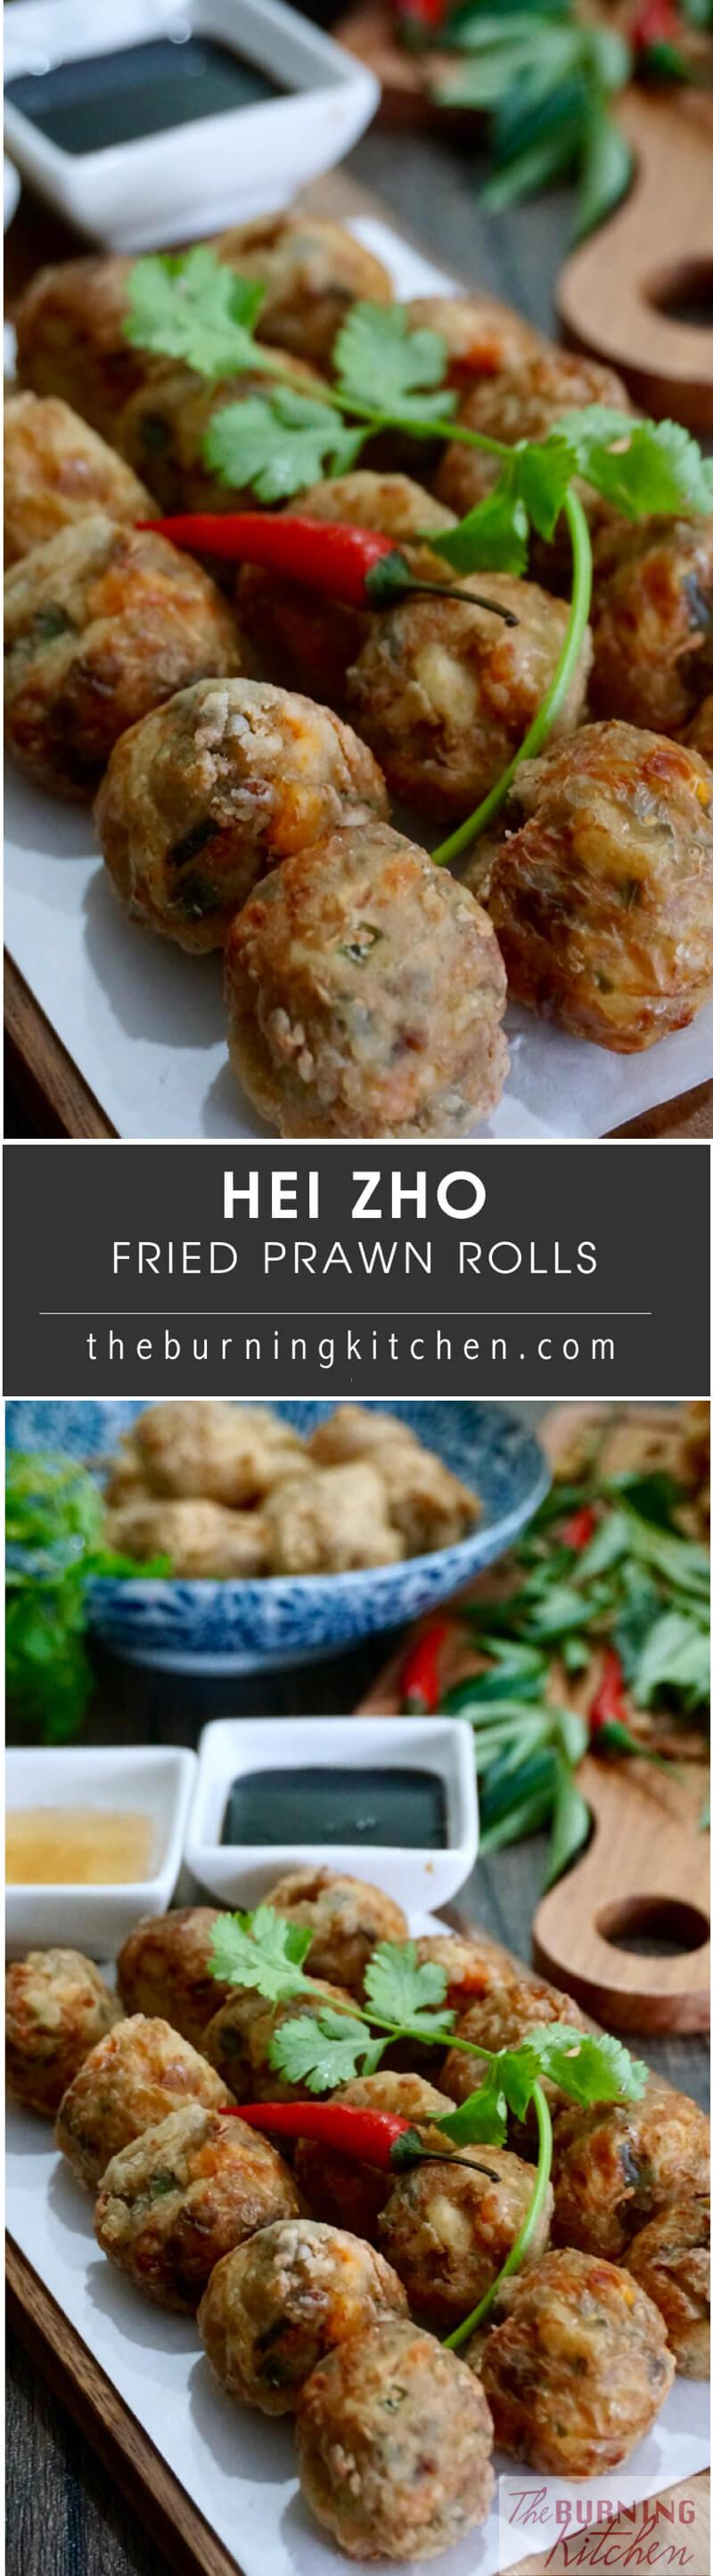 Deep Fried Prawn Roll, or Hei Zho, is a Teochew and Hokkien favourite dish served during Chinese New Year. Similar to Ngor Hiang, this dish contains more prawn and is in the shape of beads.Eat this while it's hot! #heizho #friedprawnrolls #theburningkitchen #tbk